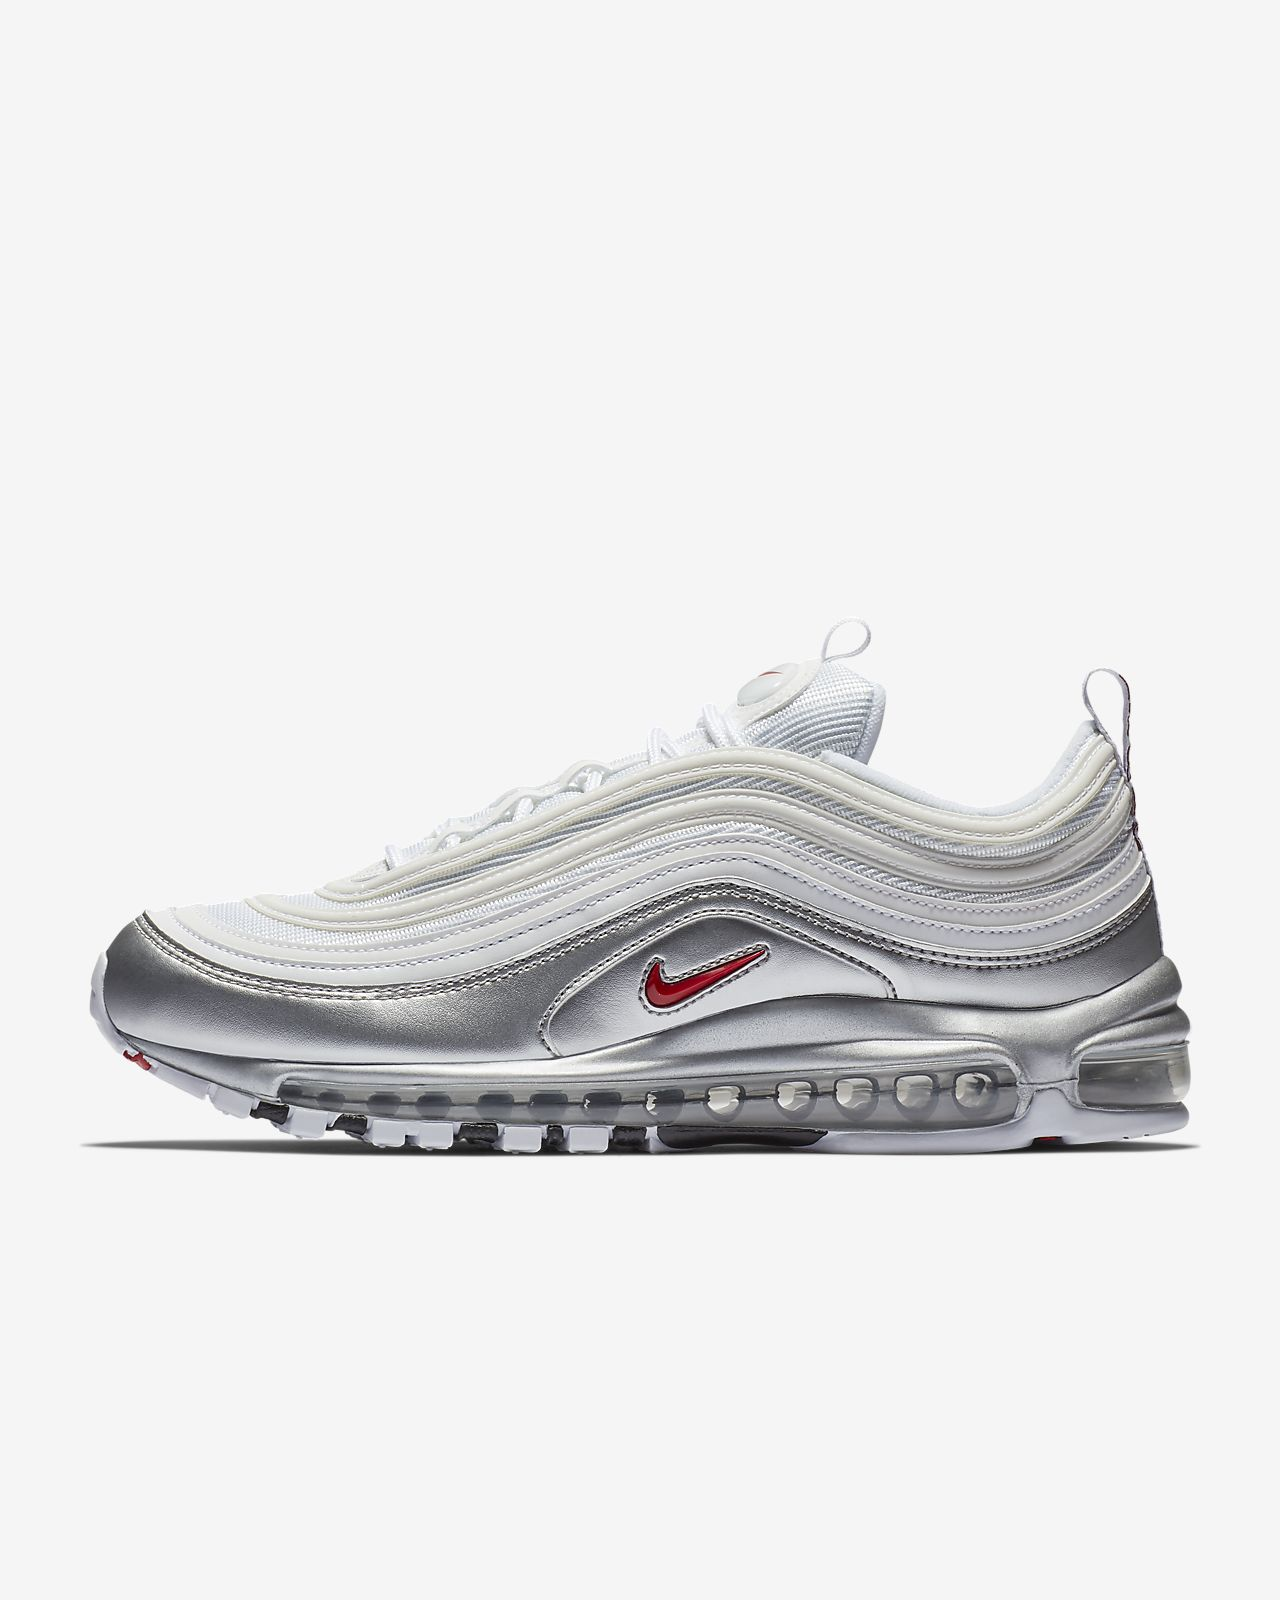 1b733aa8ab1 Nike Air Max 97 QS Men s Shoe. Nike.com